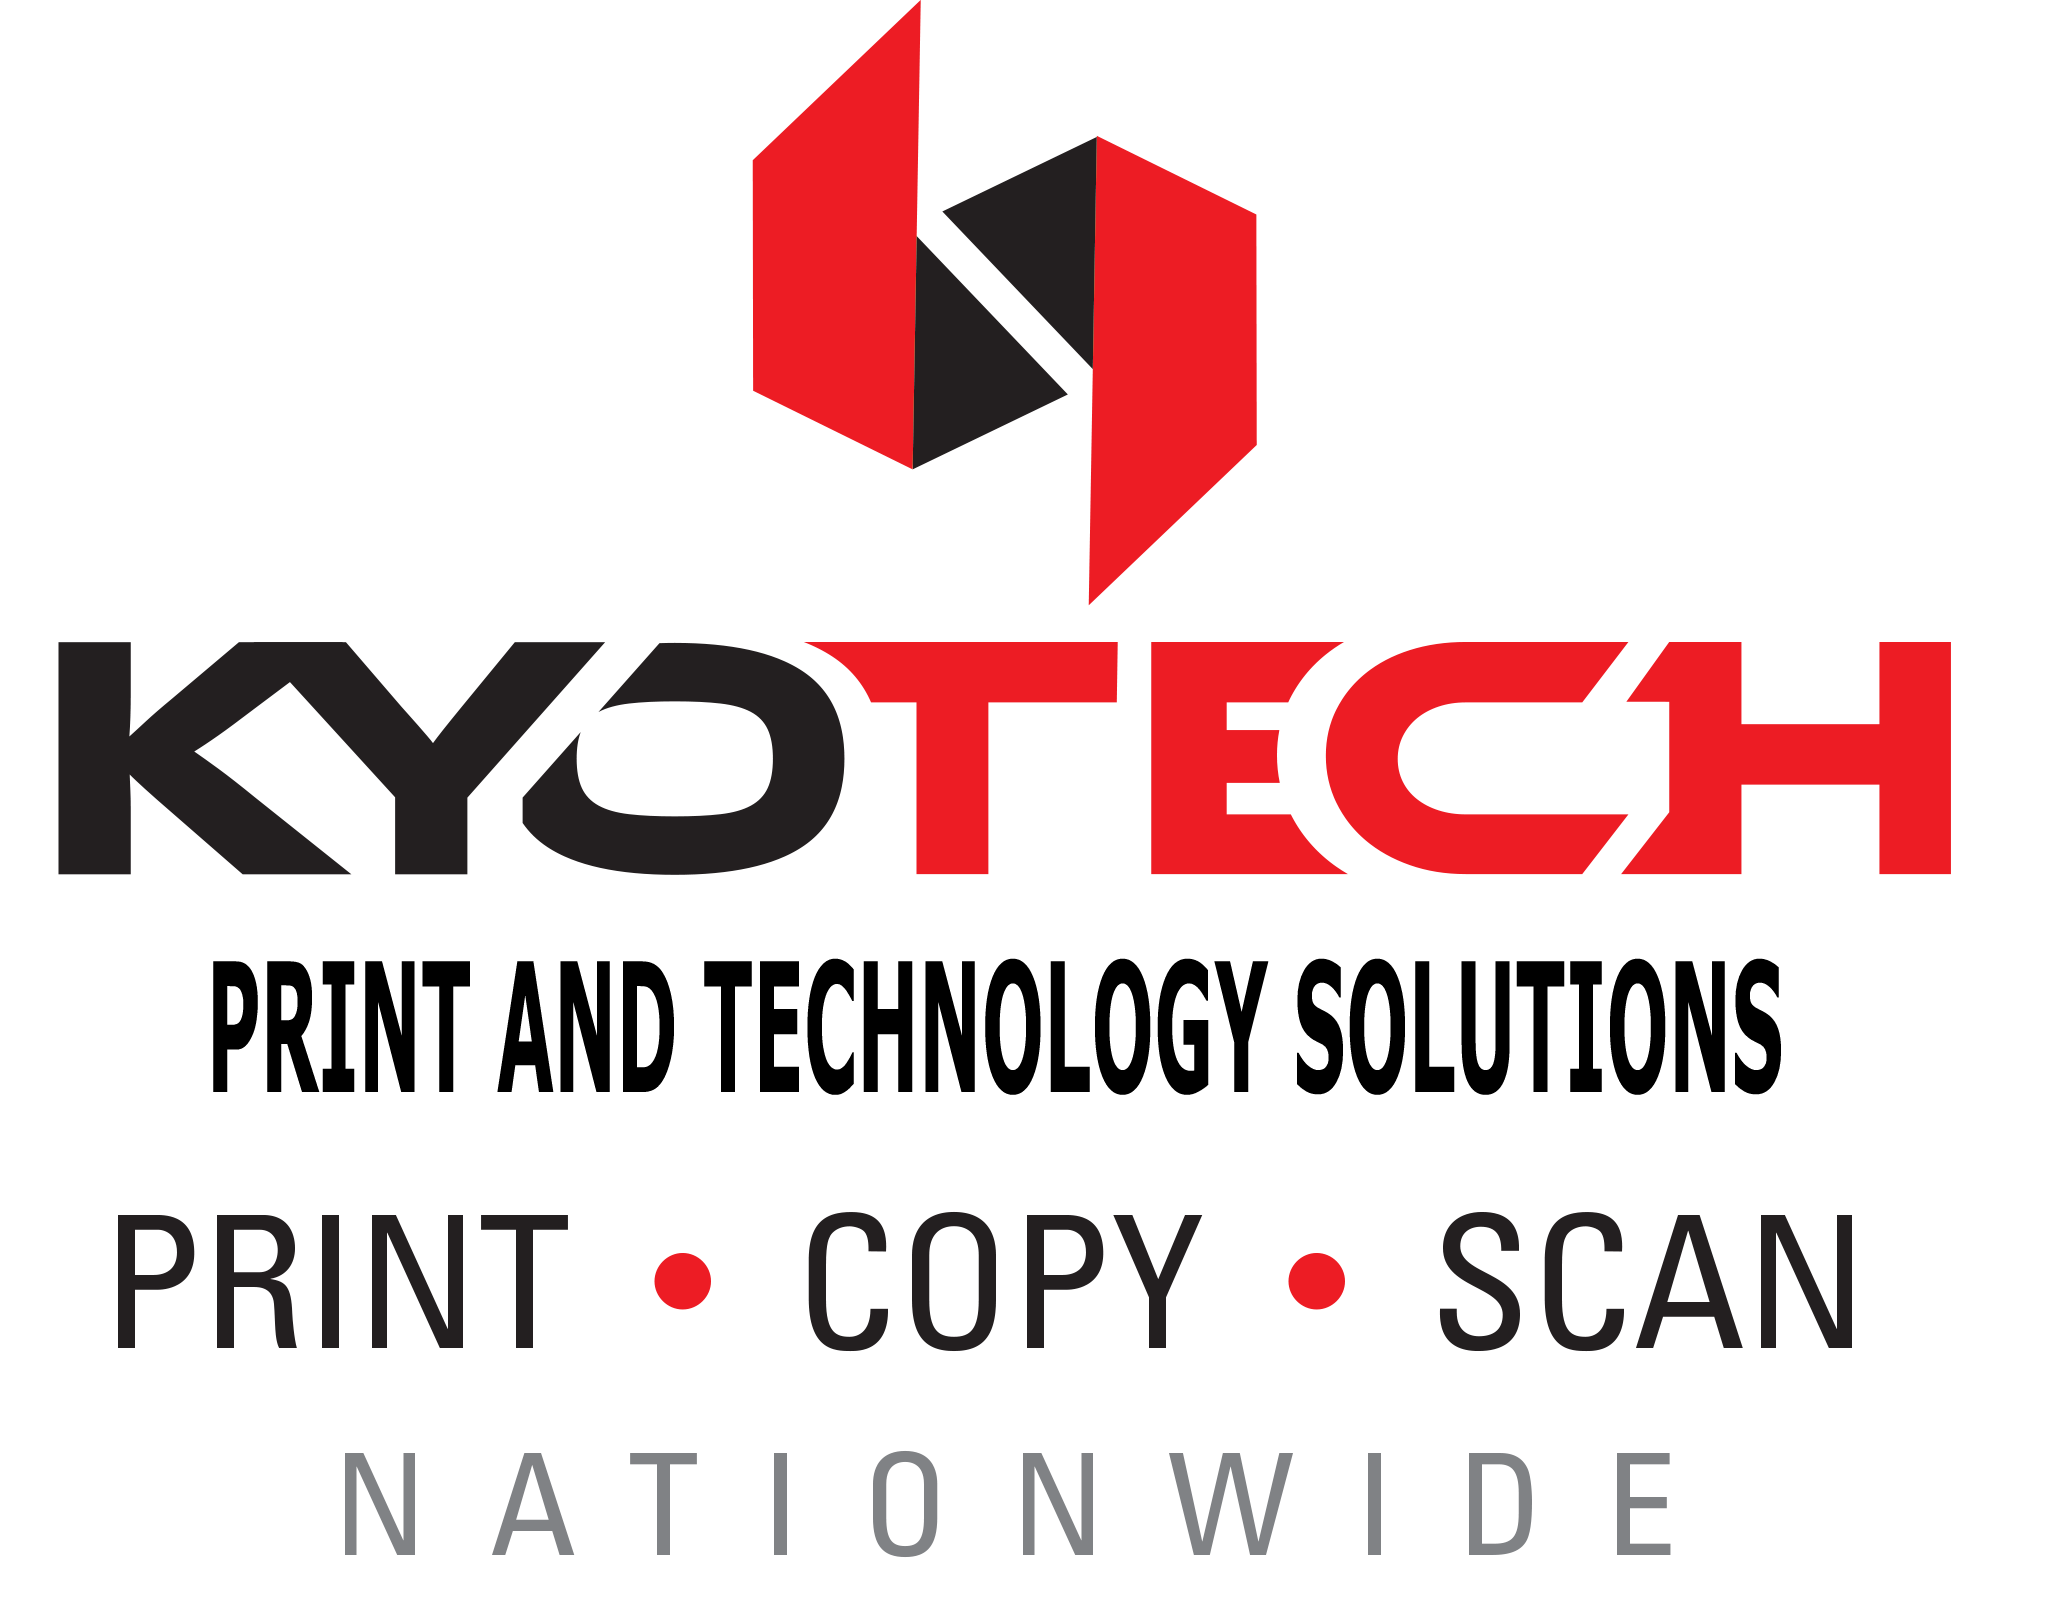 kyotech logo footer